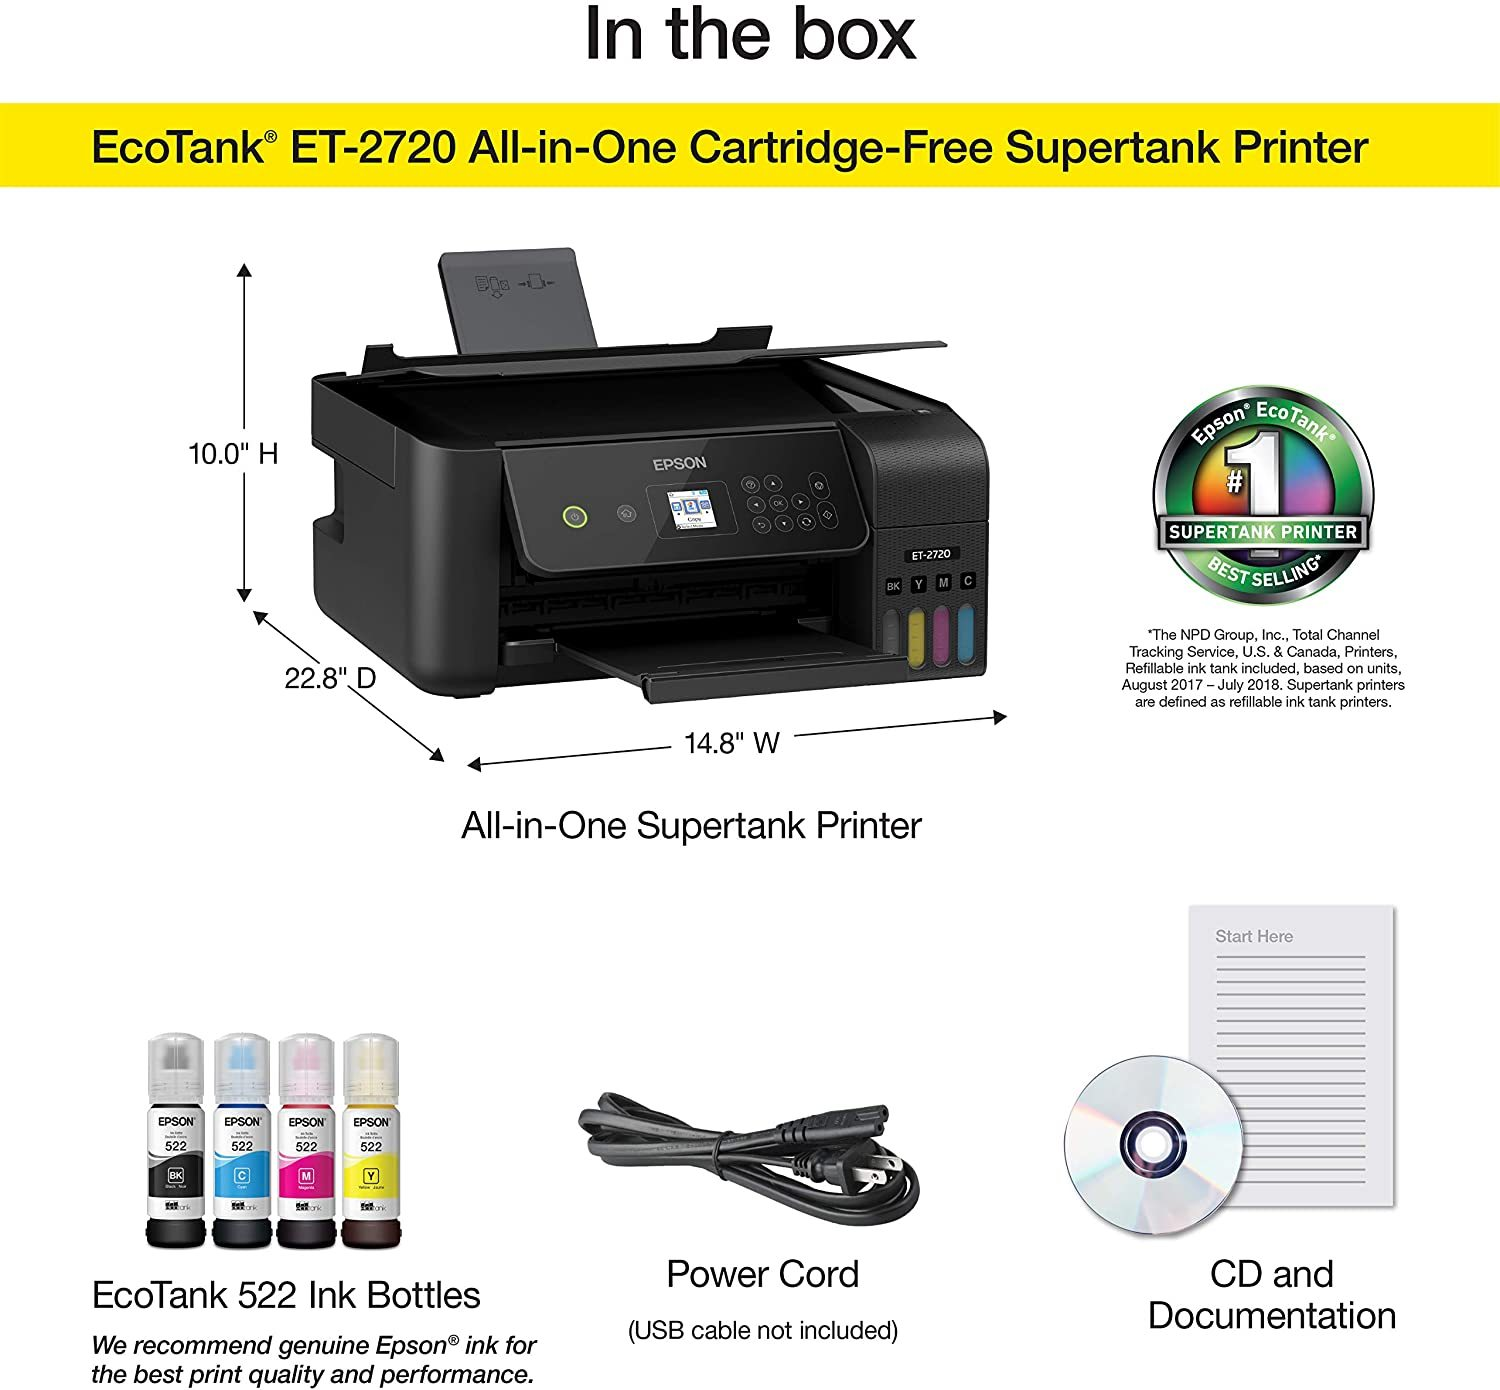 EcoTank ET-2720 Wireless Color All-in-One Supertank Printer with Scanner and Copier - Black